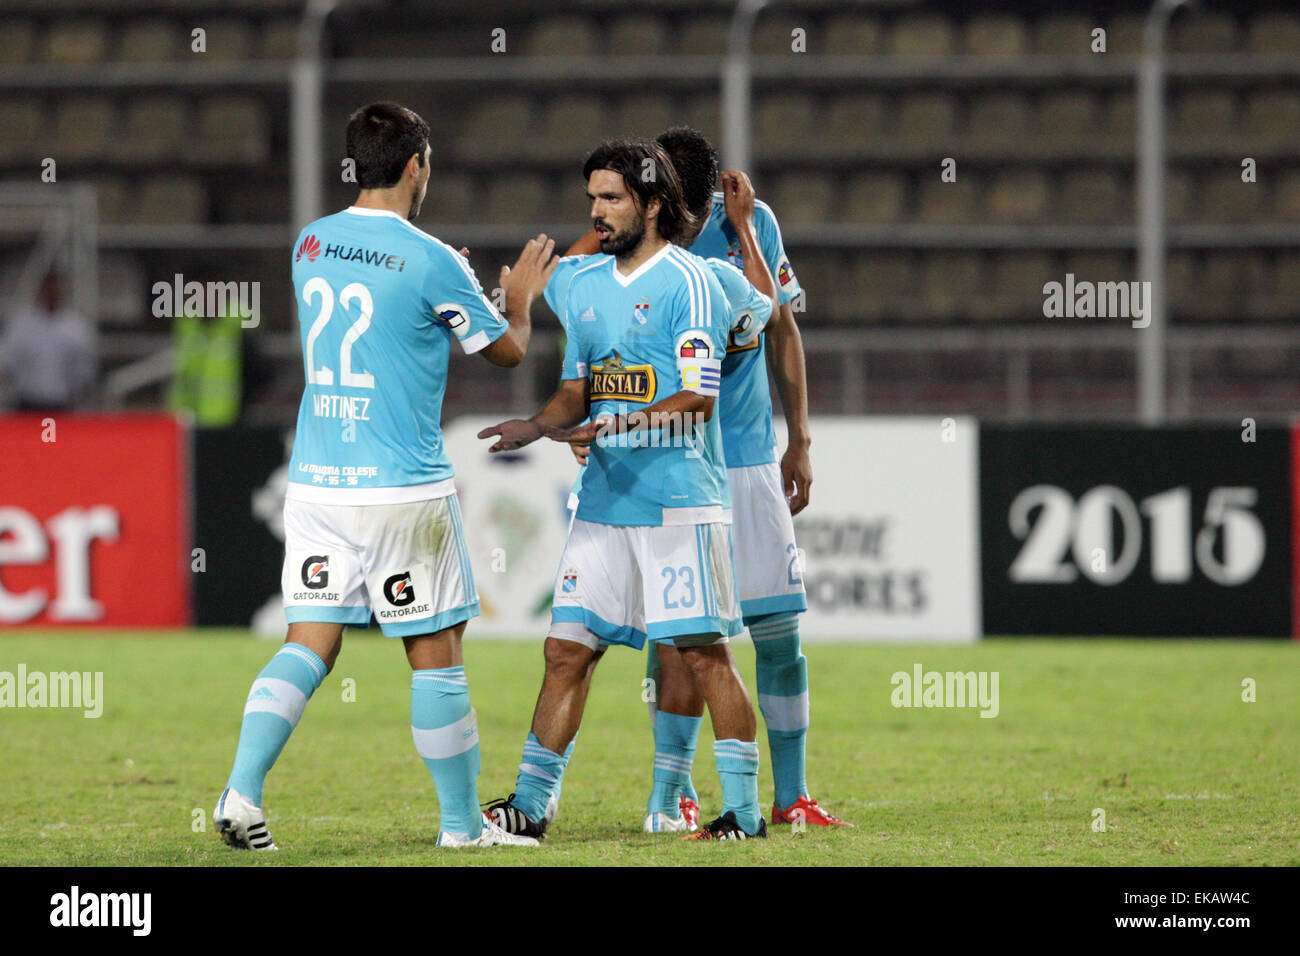 Tachira. 9th Apr, 2015. Sporting Cristal's players react before the Group 8 match of the Libertadores Cup against - Stock Image